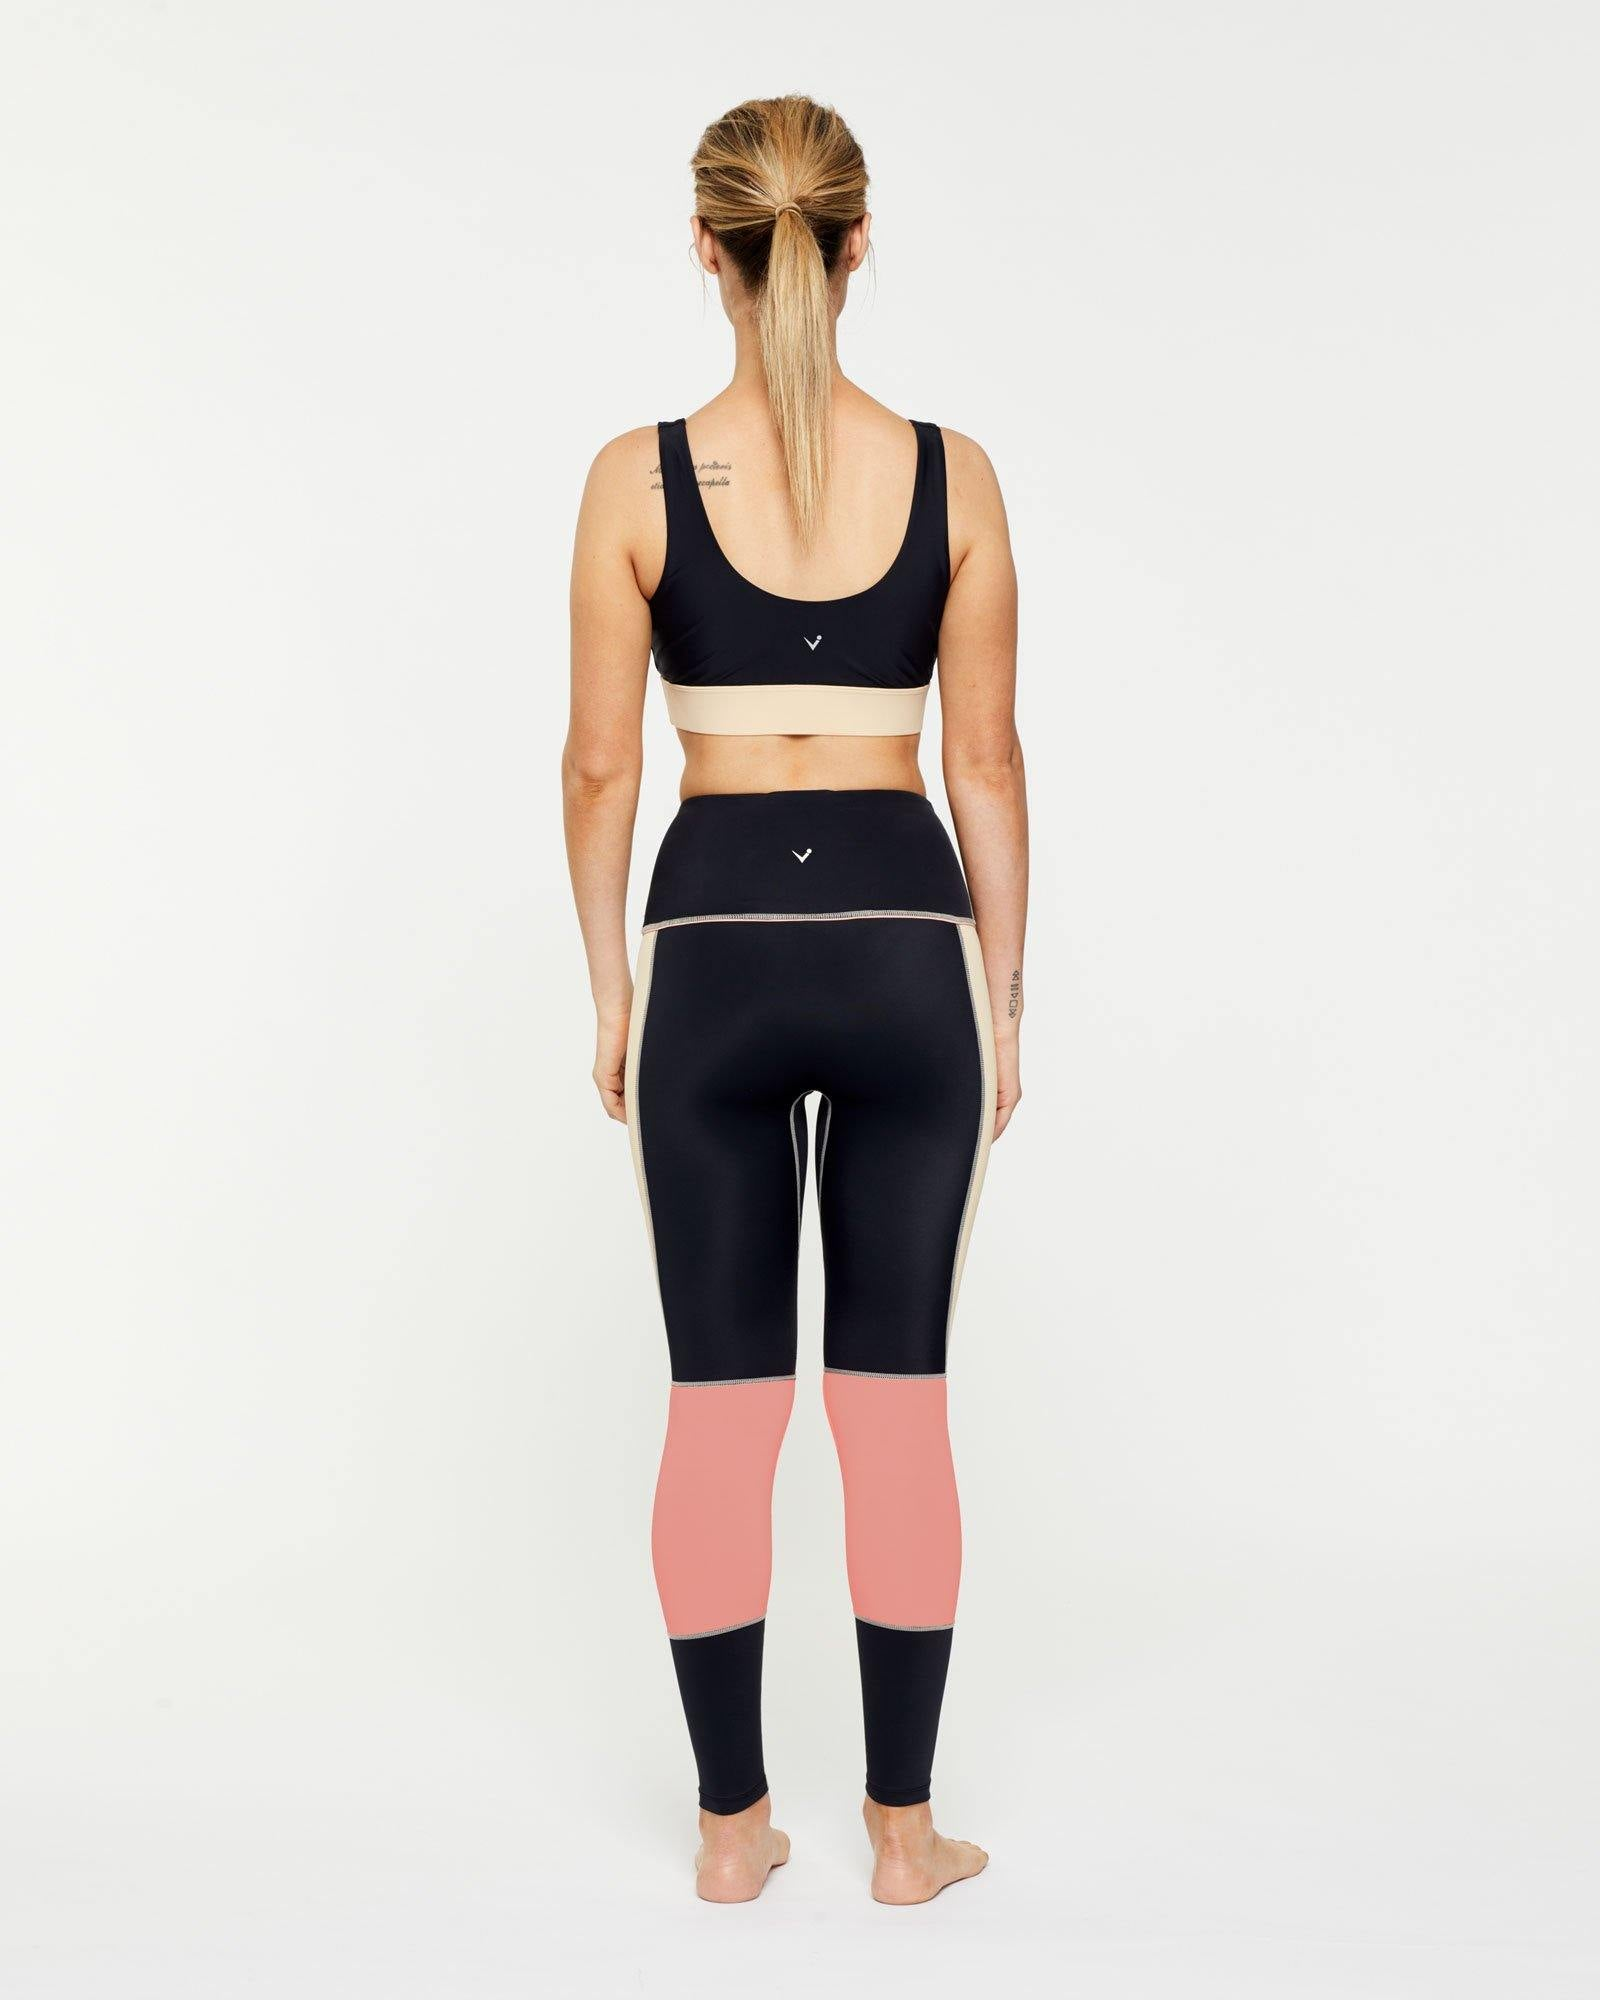 WARRIOR GRACILIS 7/8 HIGH WAISTED LEGGING BLACK WITH CONTRAST PANELS WORN WITH PECTORALIS BRA TOP, BACK VIEW